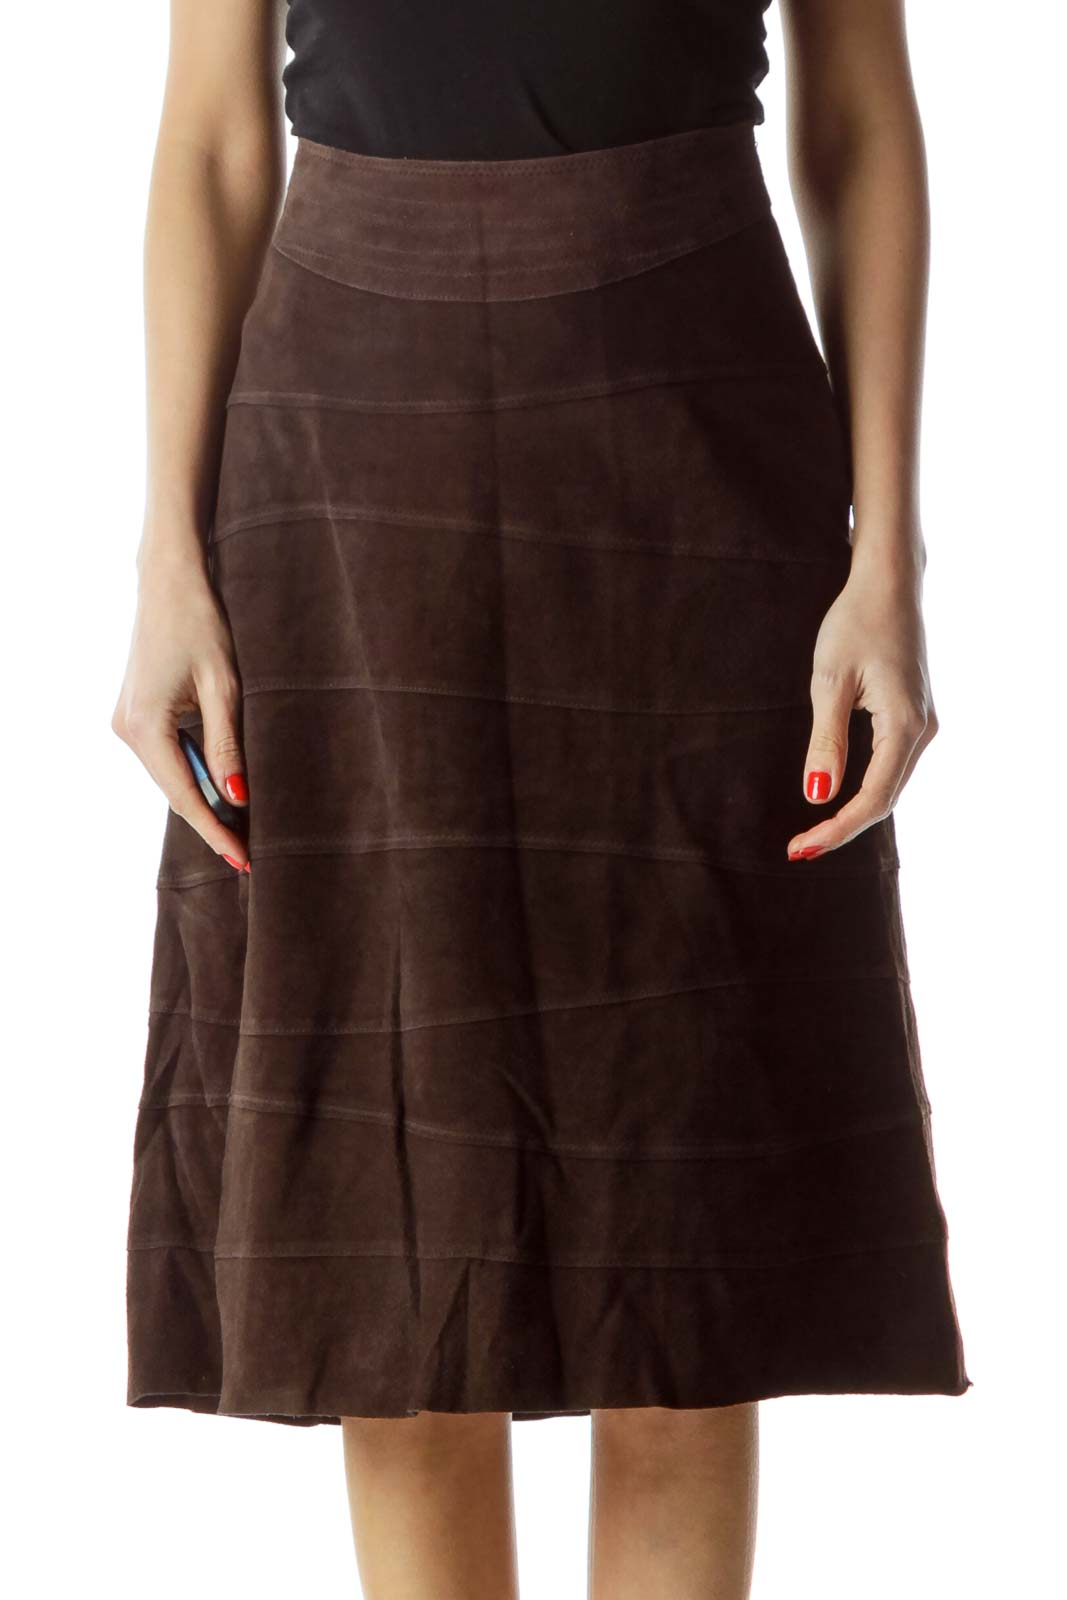 Brown Flared Leather Skirt with Slip Front